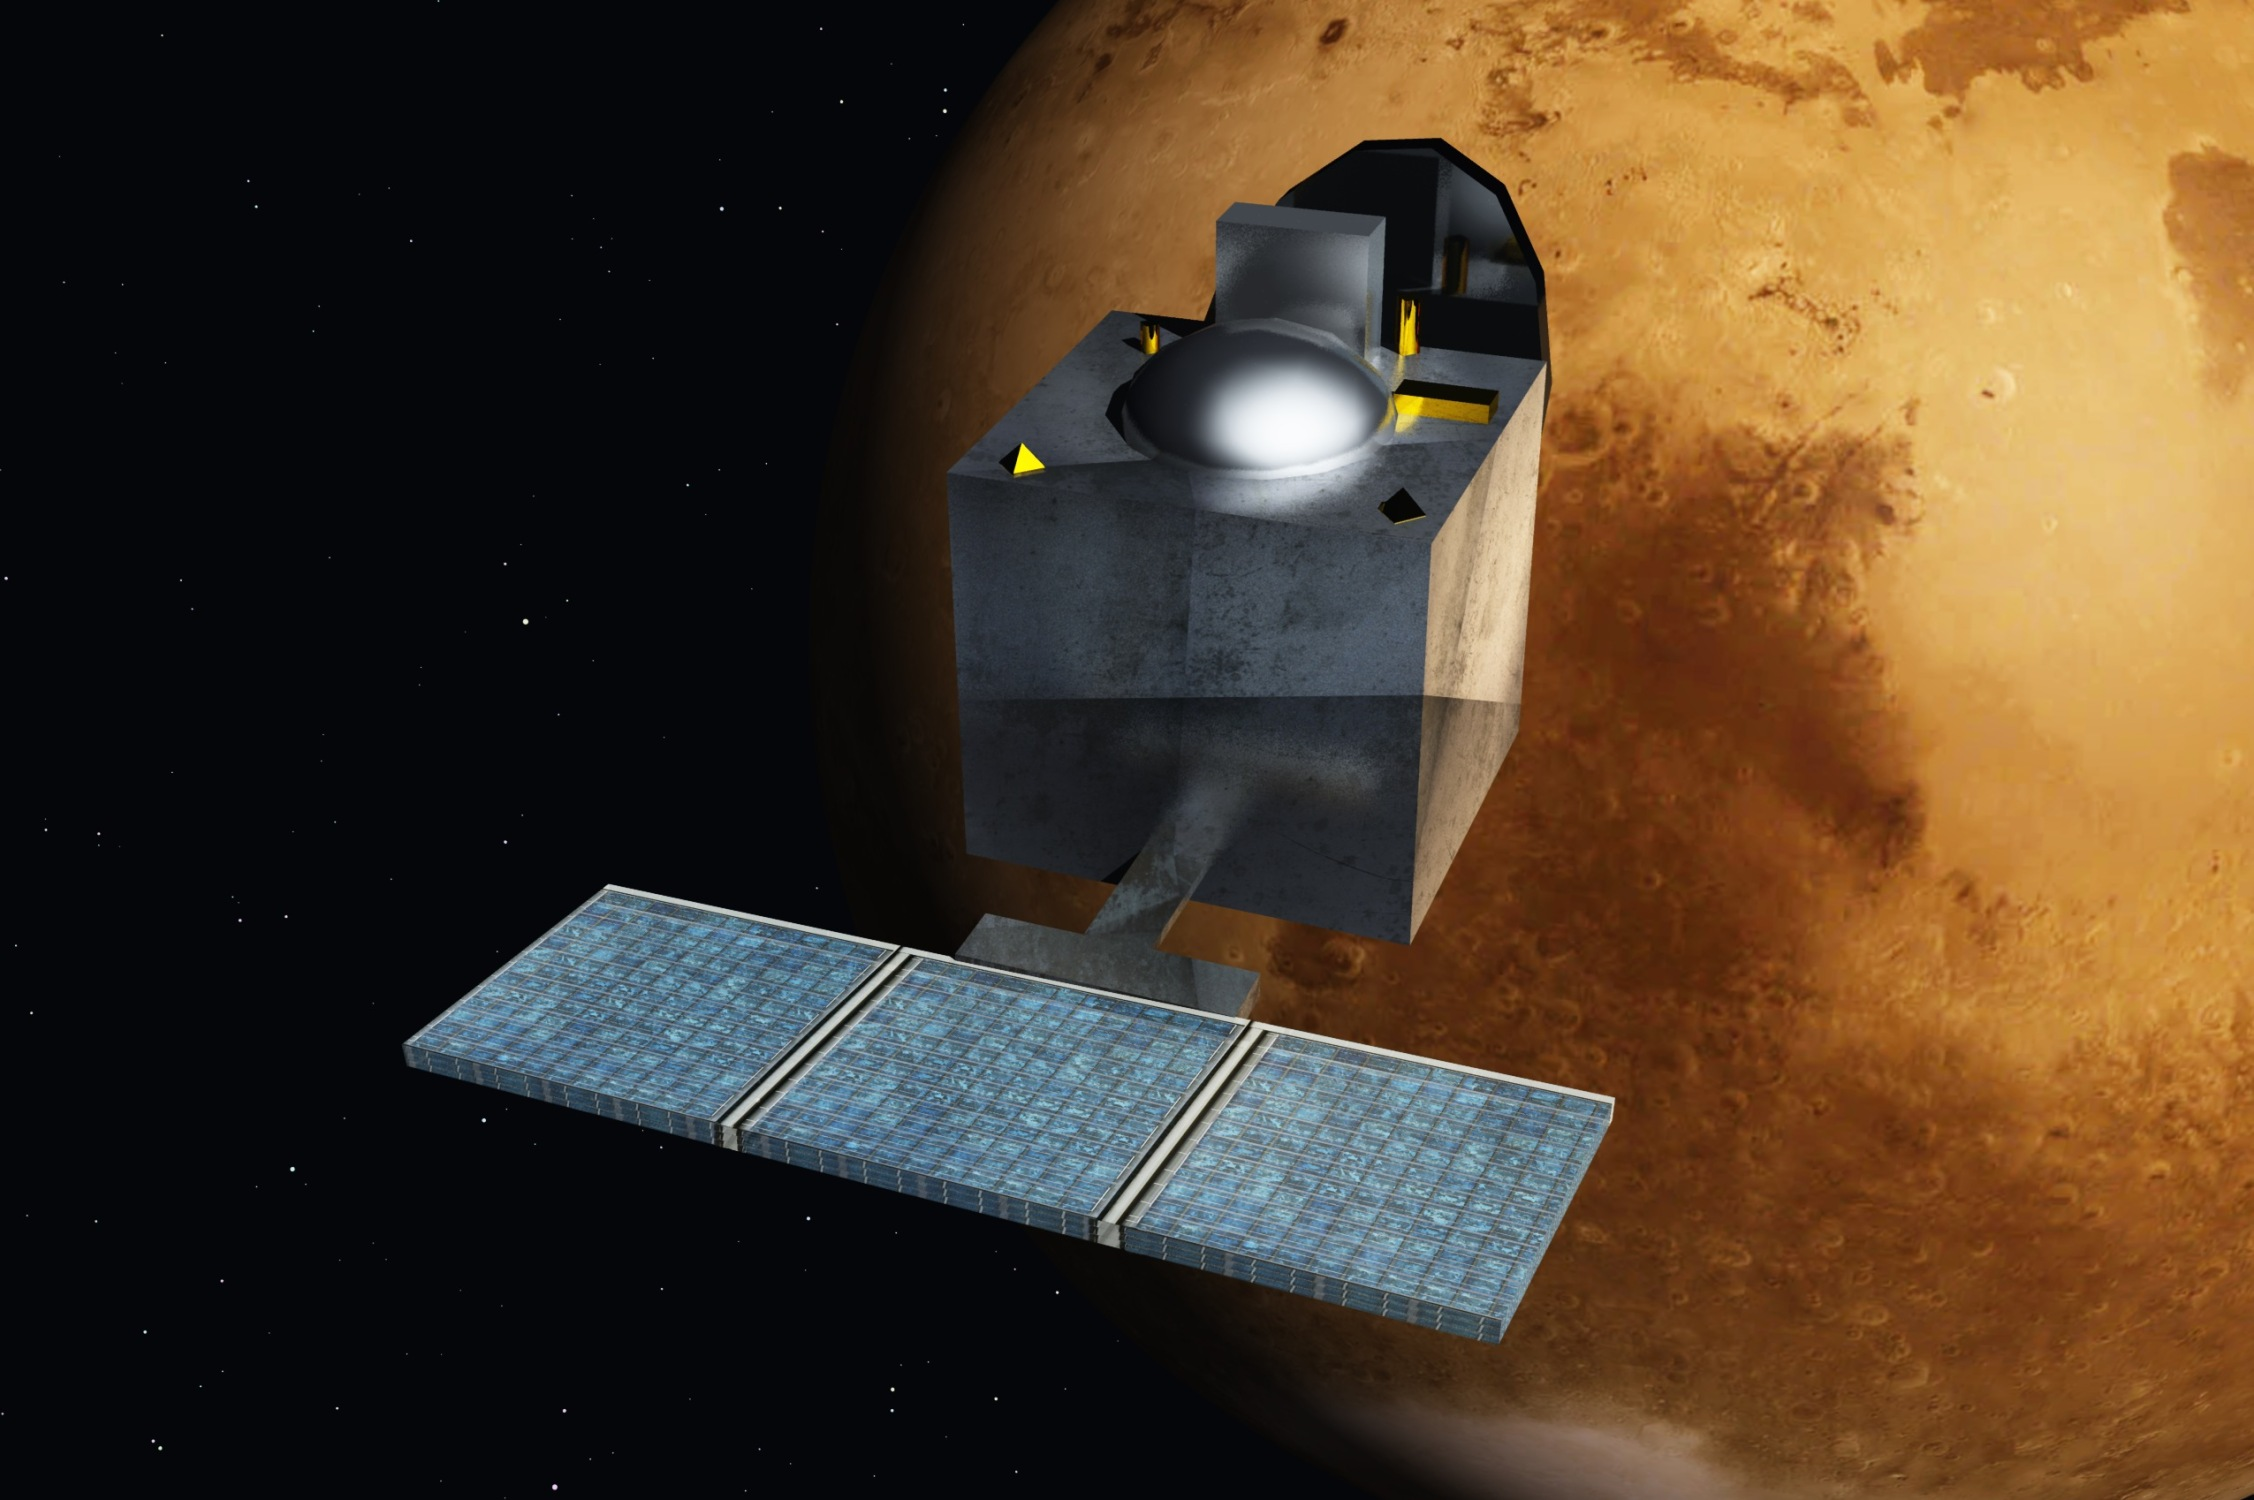 Mars_Orbiter_Mission_-_India_-_ArtistsConcept (Source: Wikimedia Commons)